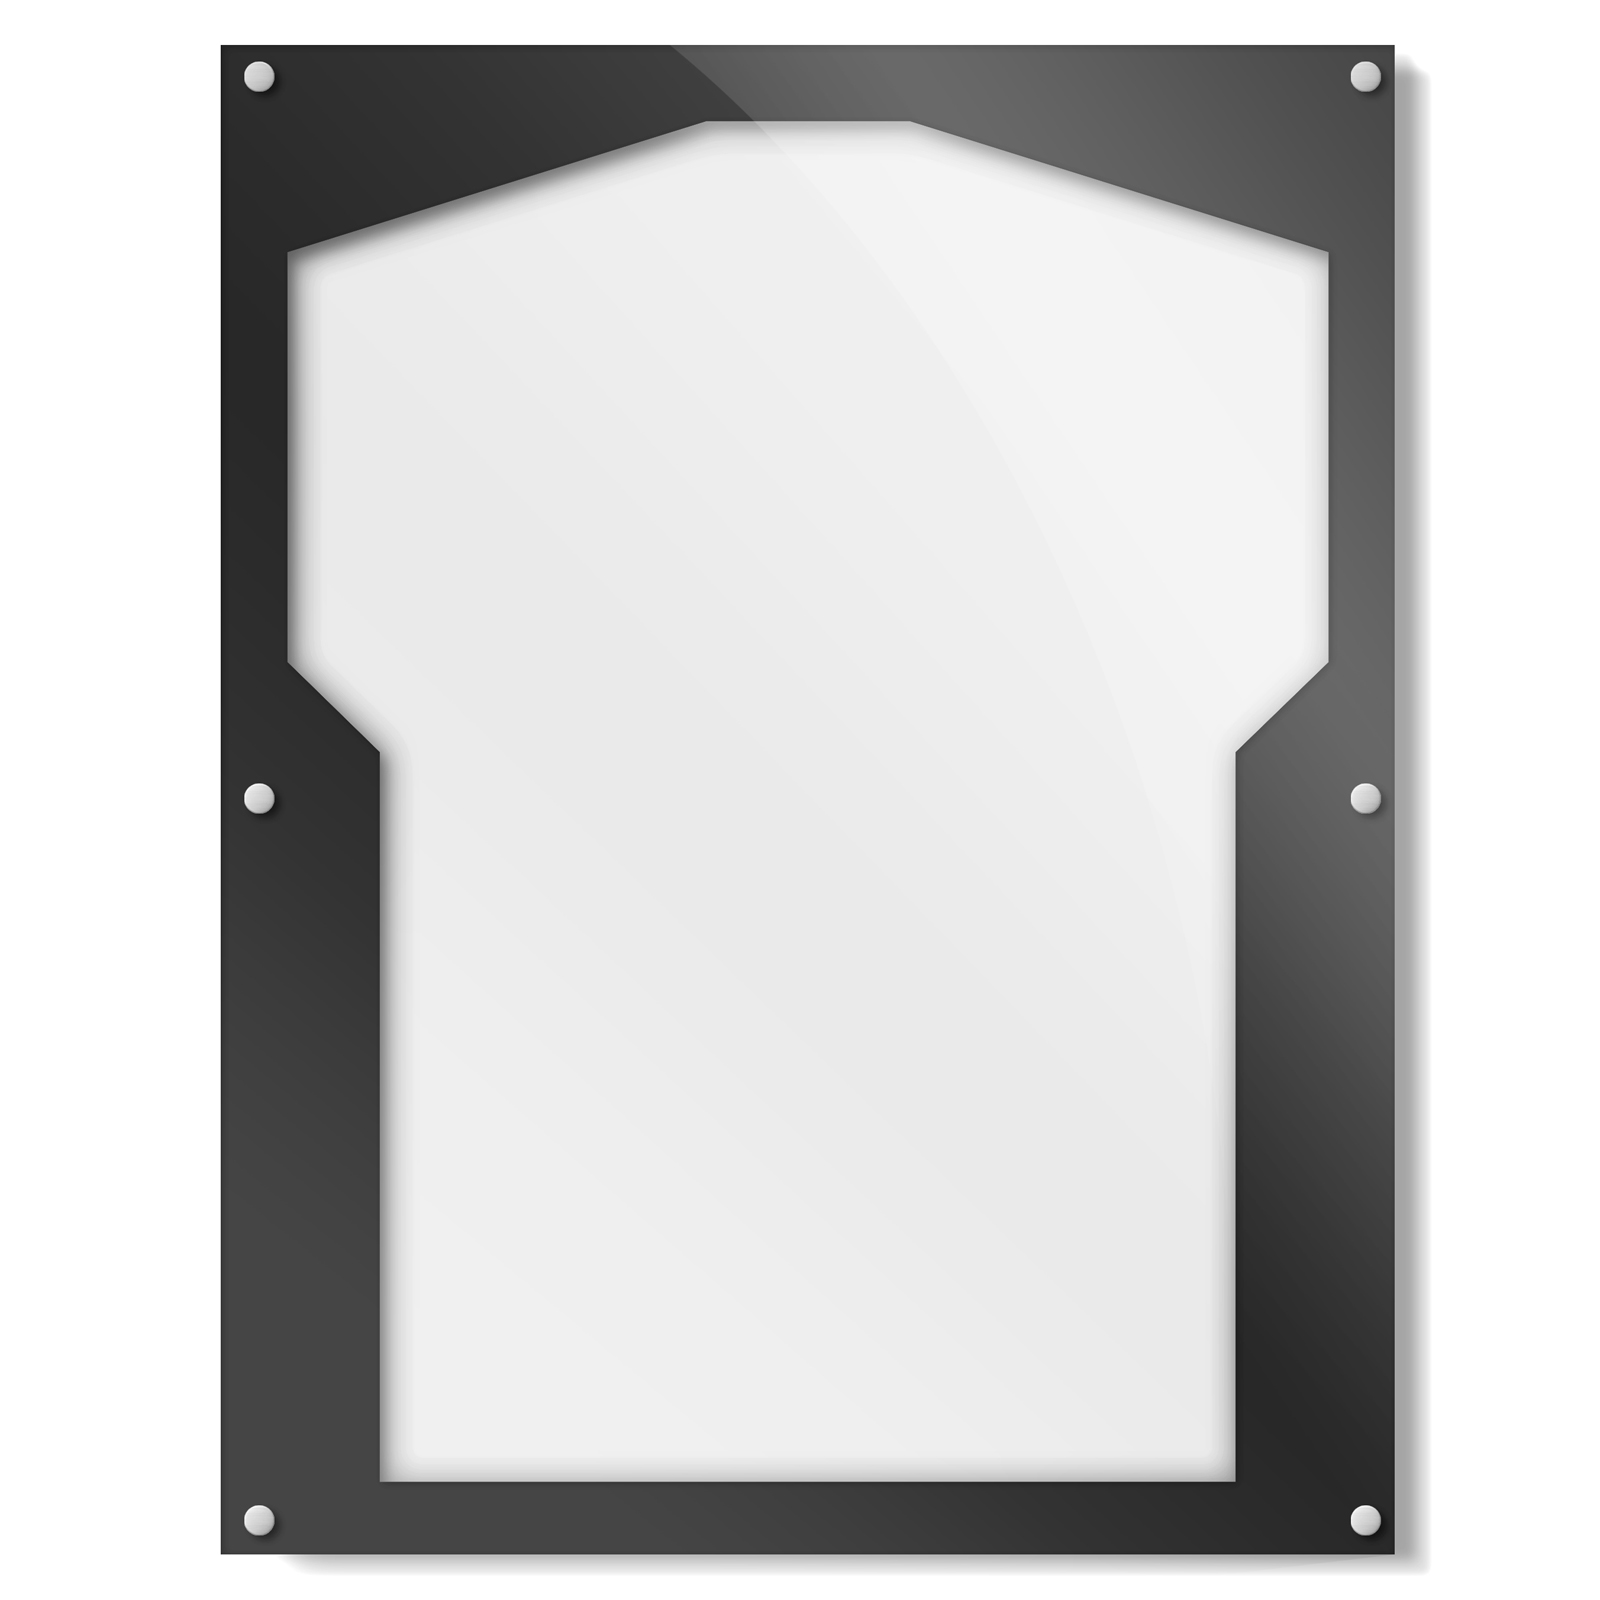 Black Shirt Frame With Team Variations | Get Acrylic Photo Frames